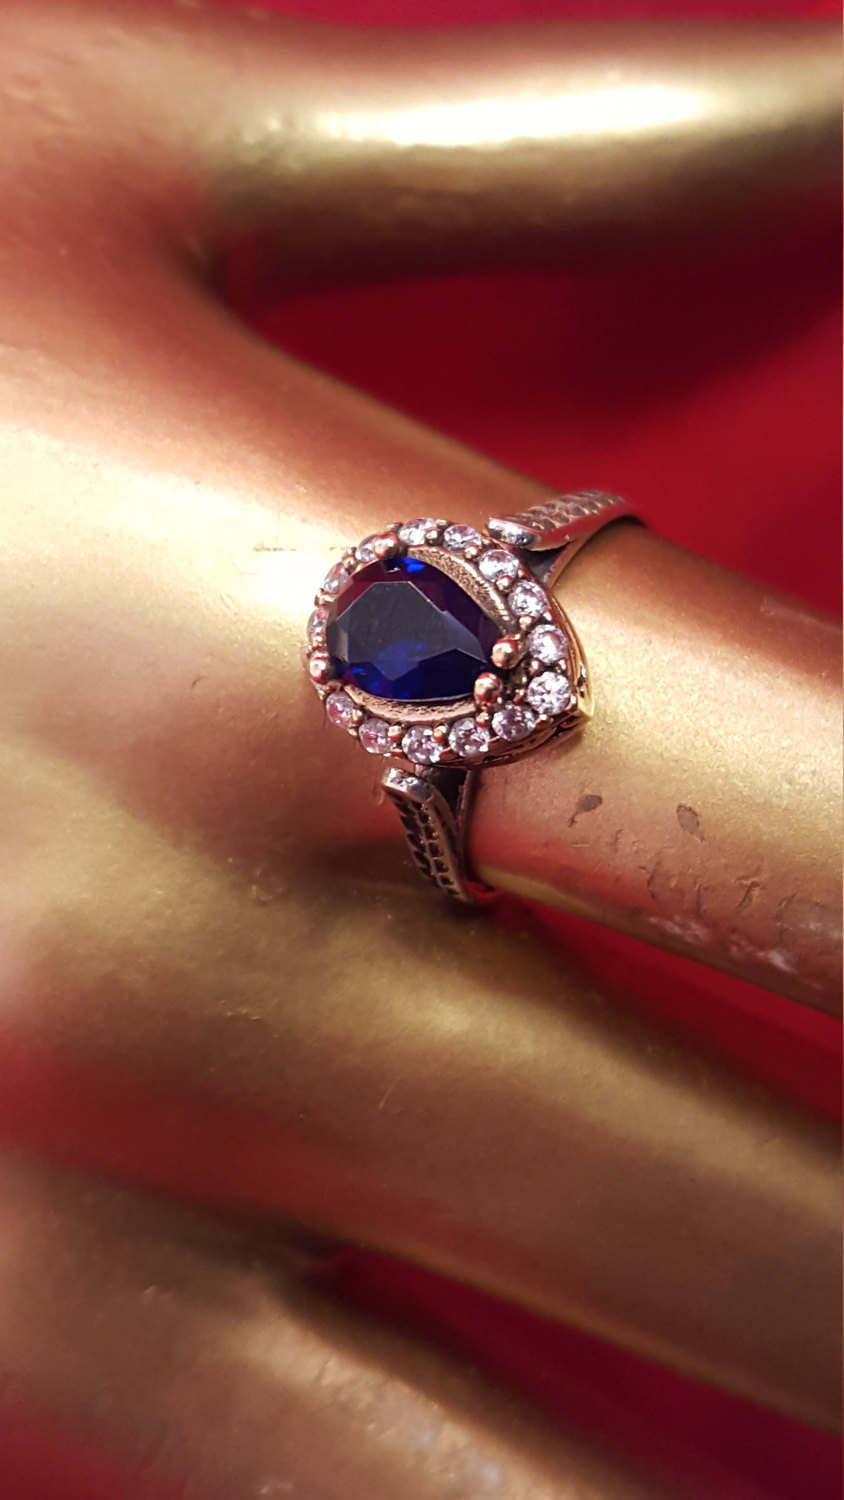 Wedding - Sterling Silver 9.25 Stamped.Genuine Sapphire Gemstone.Handmade ring.Gold over silver. Antique finished.Bridal Gifts.Wedding Jewelry.R-351